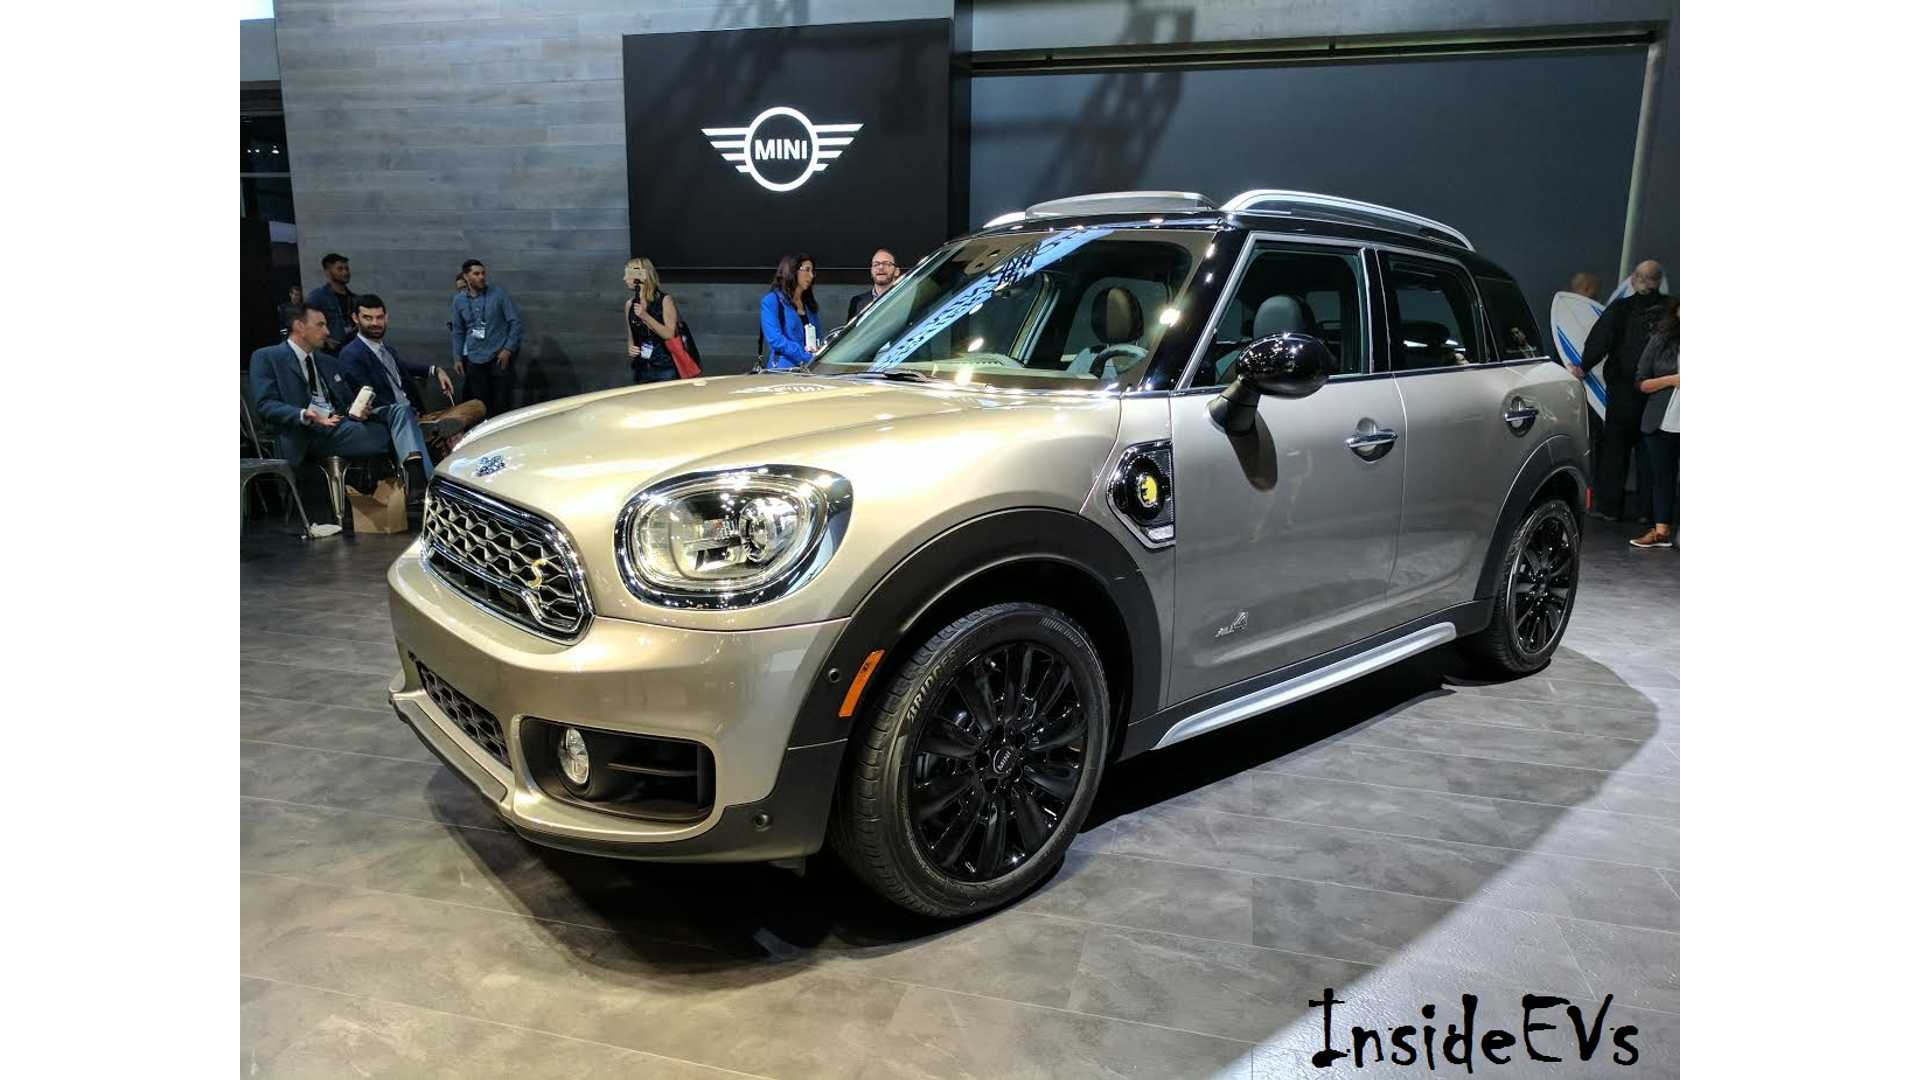 Video Recap Of The Mini Cooper S E Countryman All4 Global Debut From